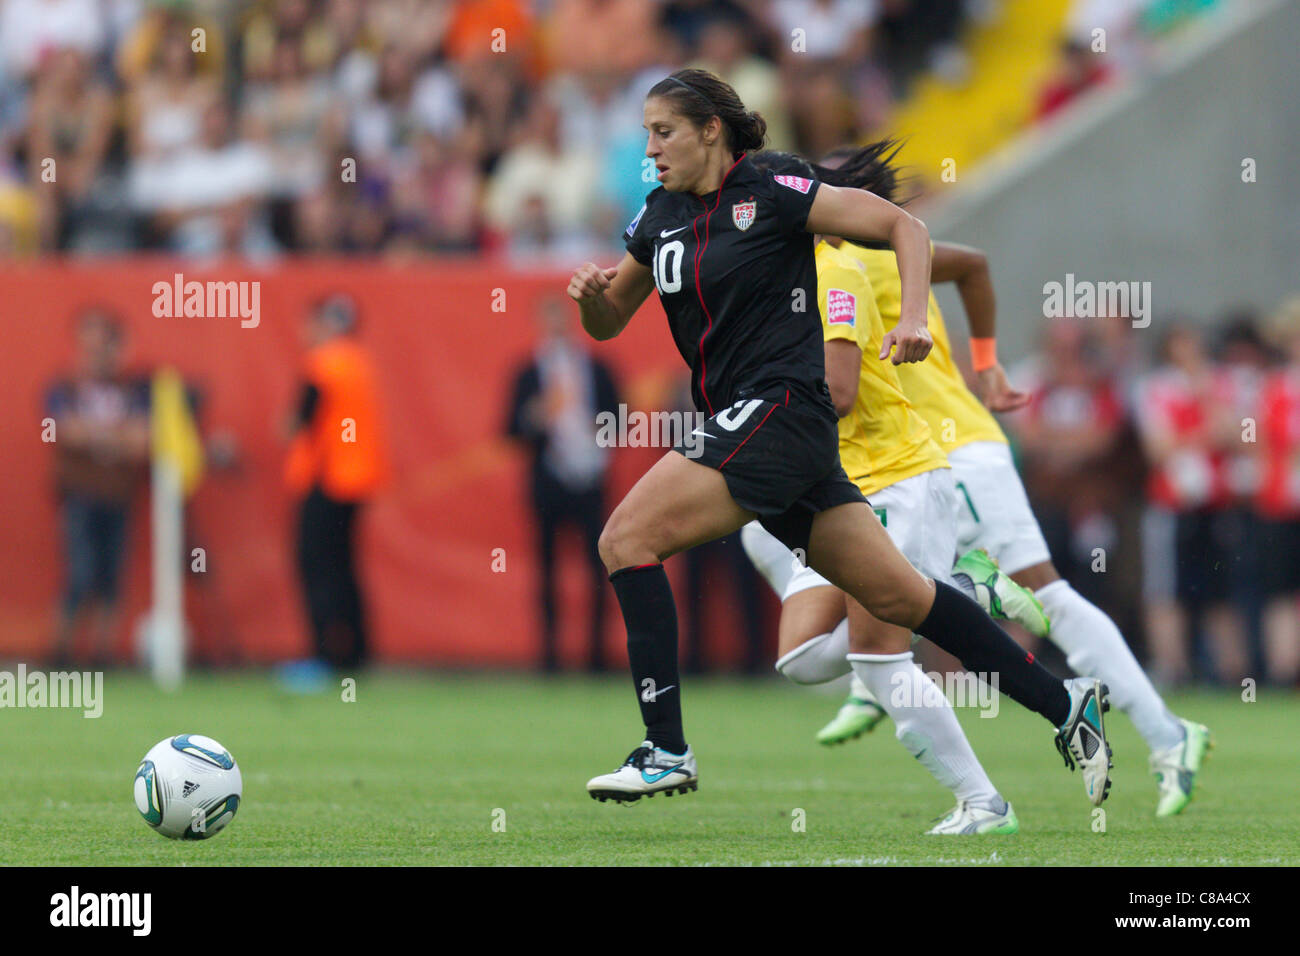 Carli Lloyd of the United States races for the ball during a 2011 FIFA Women's World Cup quarterfinal match - Stock Image